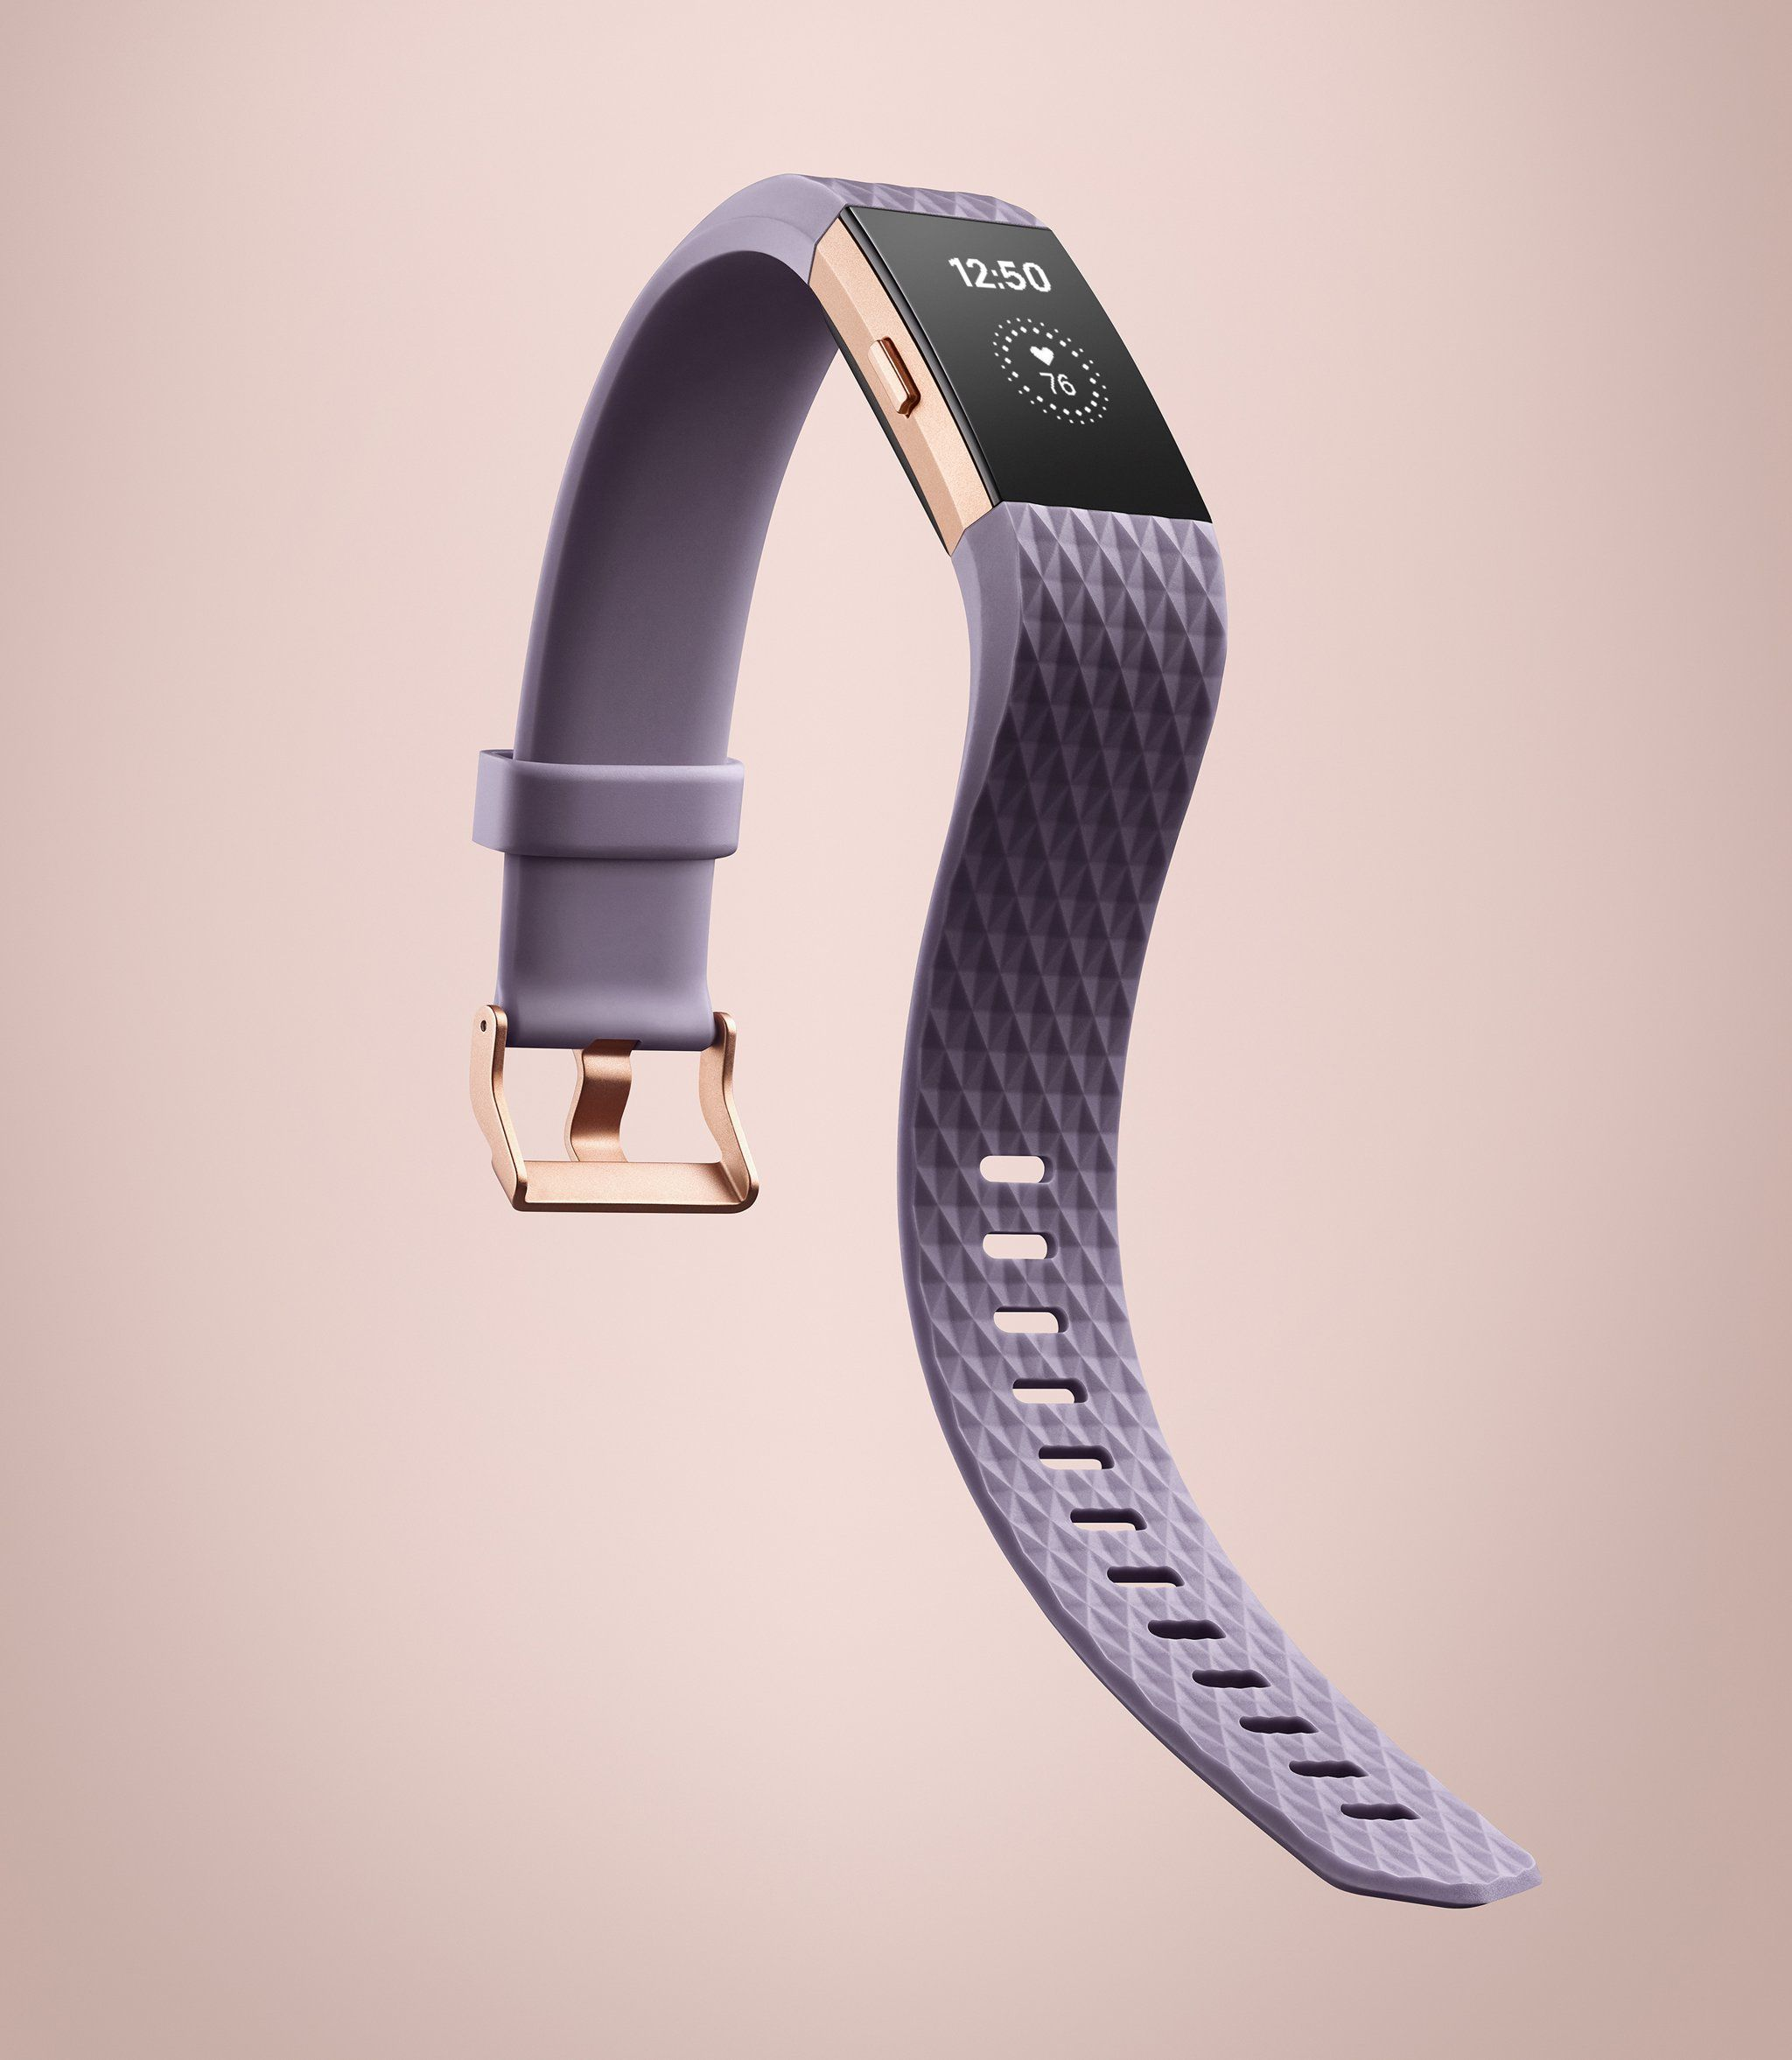 Fitbit Charge 2 In Lavender And Rose Gold Wearable Device Workout Accessories Fitbit Models